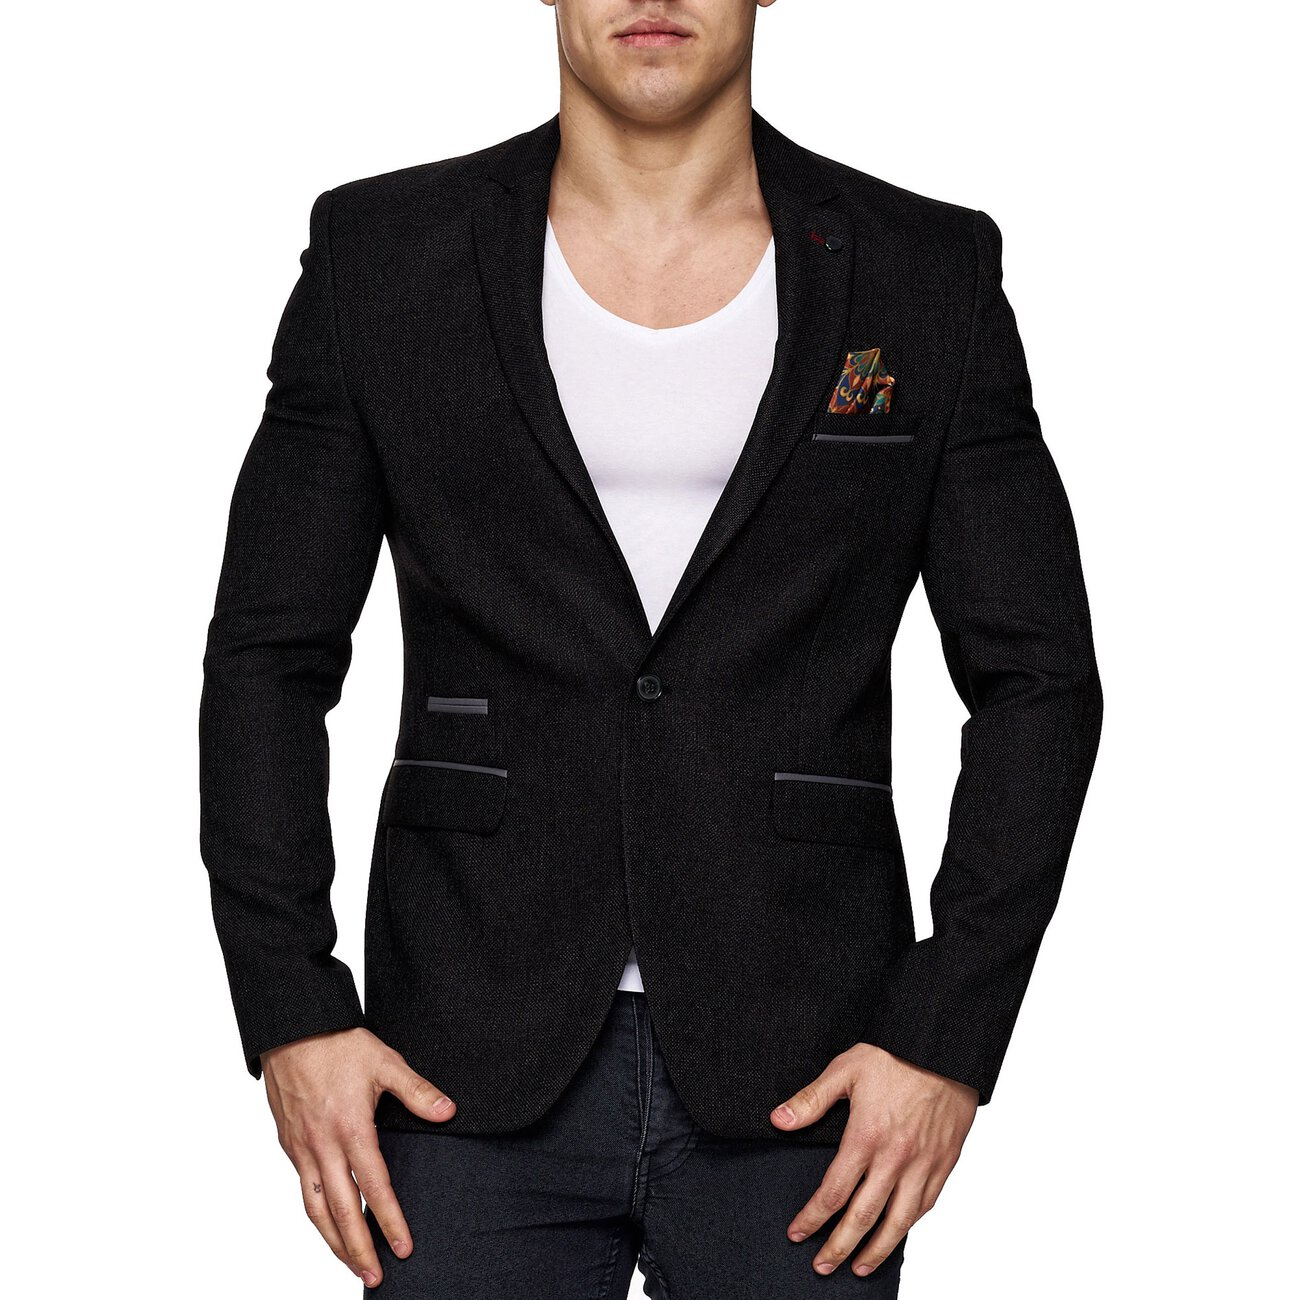 reslad sakko herren slim fit casual freizeit jacke rs 20158. Black Bedroom Furniture Sets. Home Design Ideas